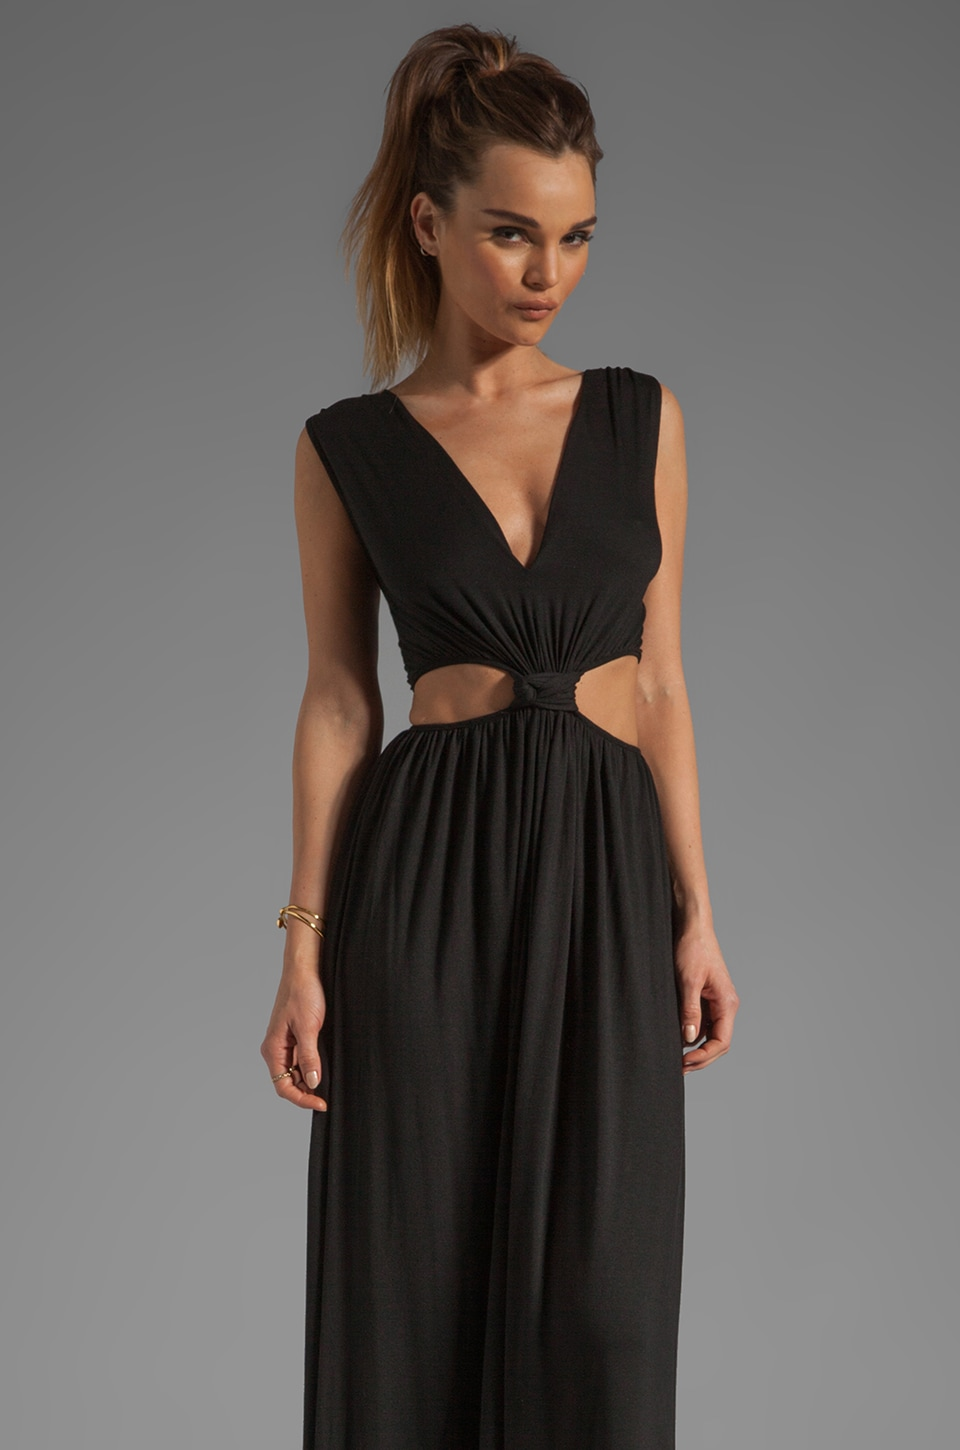 Rachel Pally Delmy Cut Out Maxi Dress in Rachel Pally Ursina Cold Shoulder Dress in Black